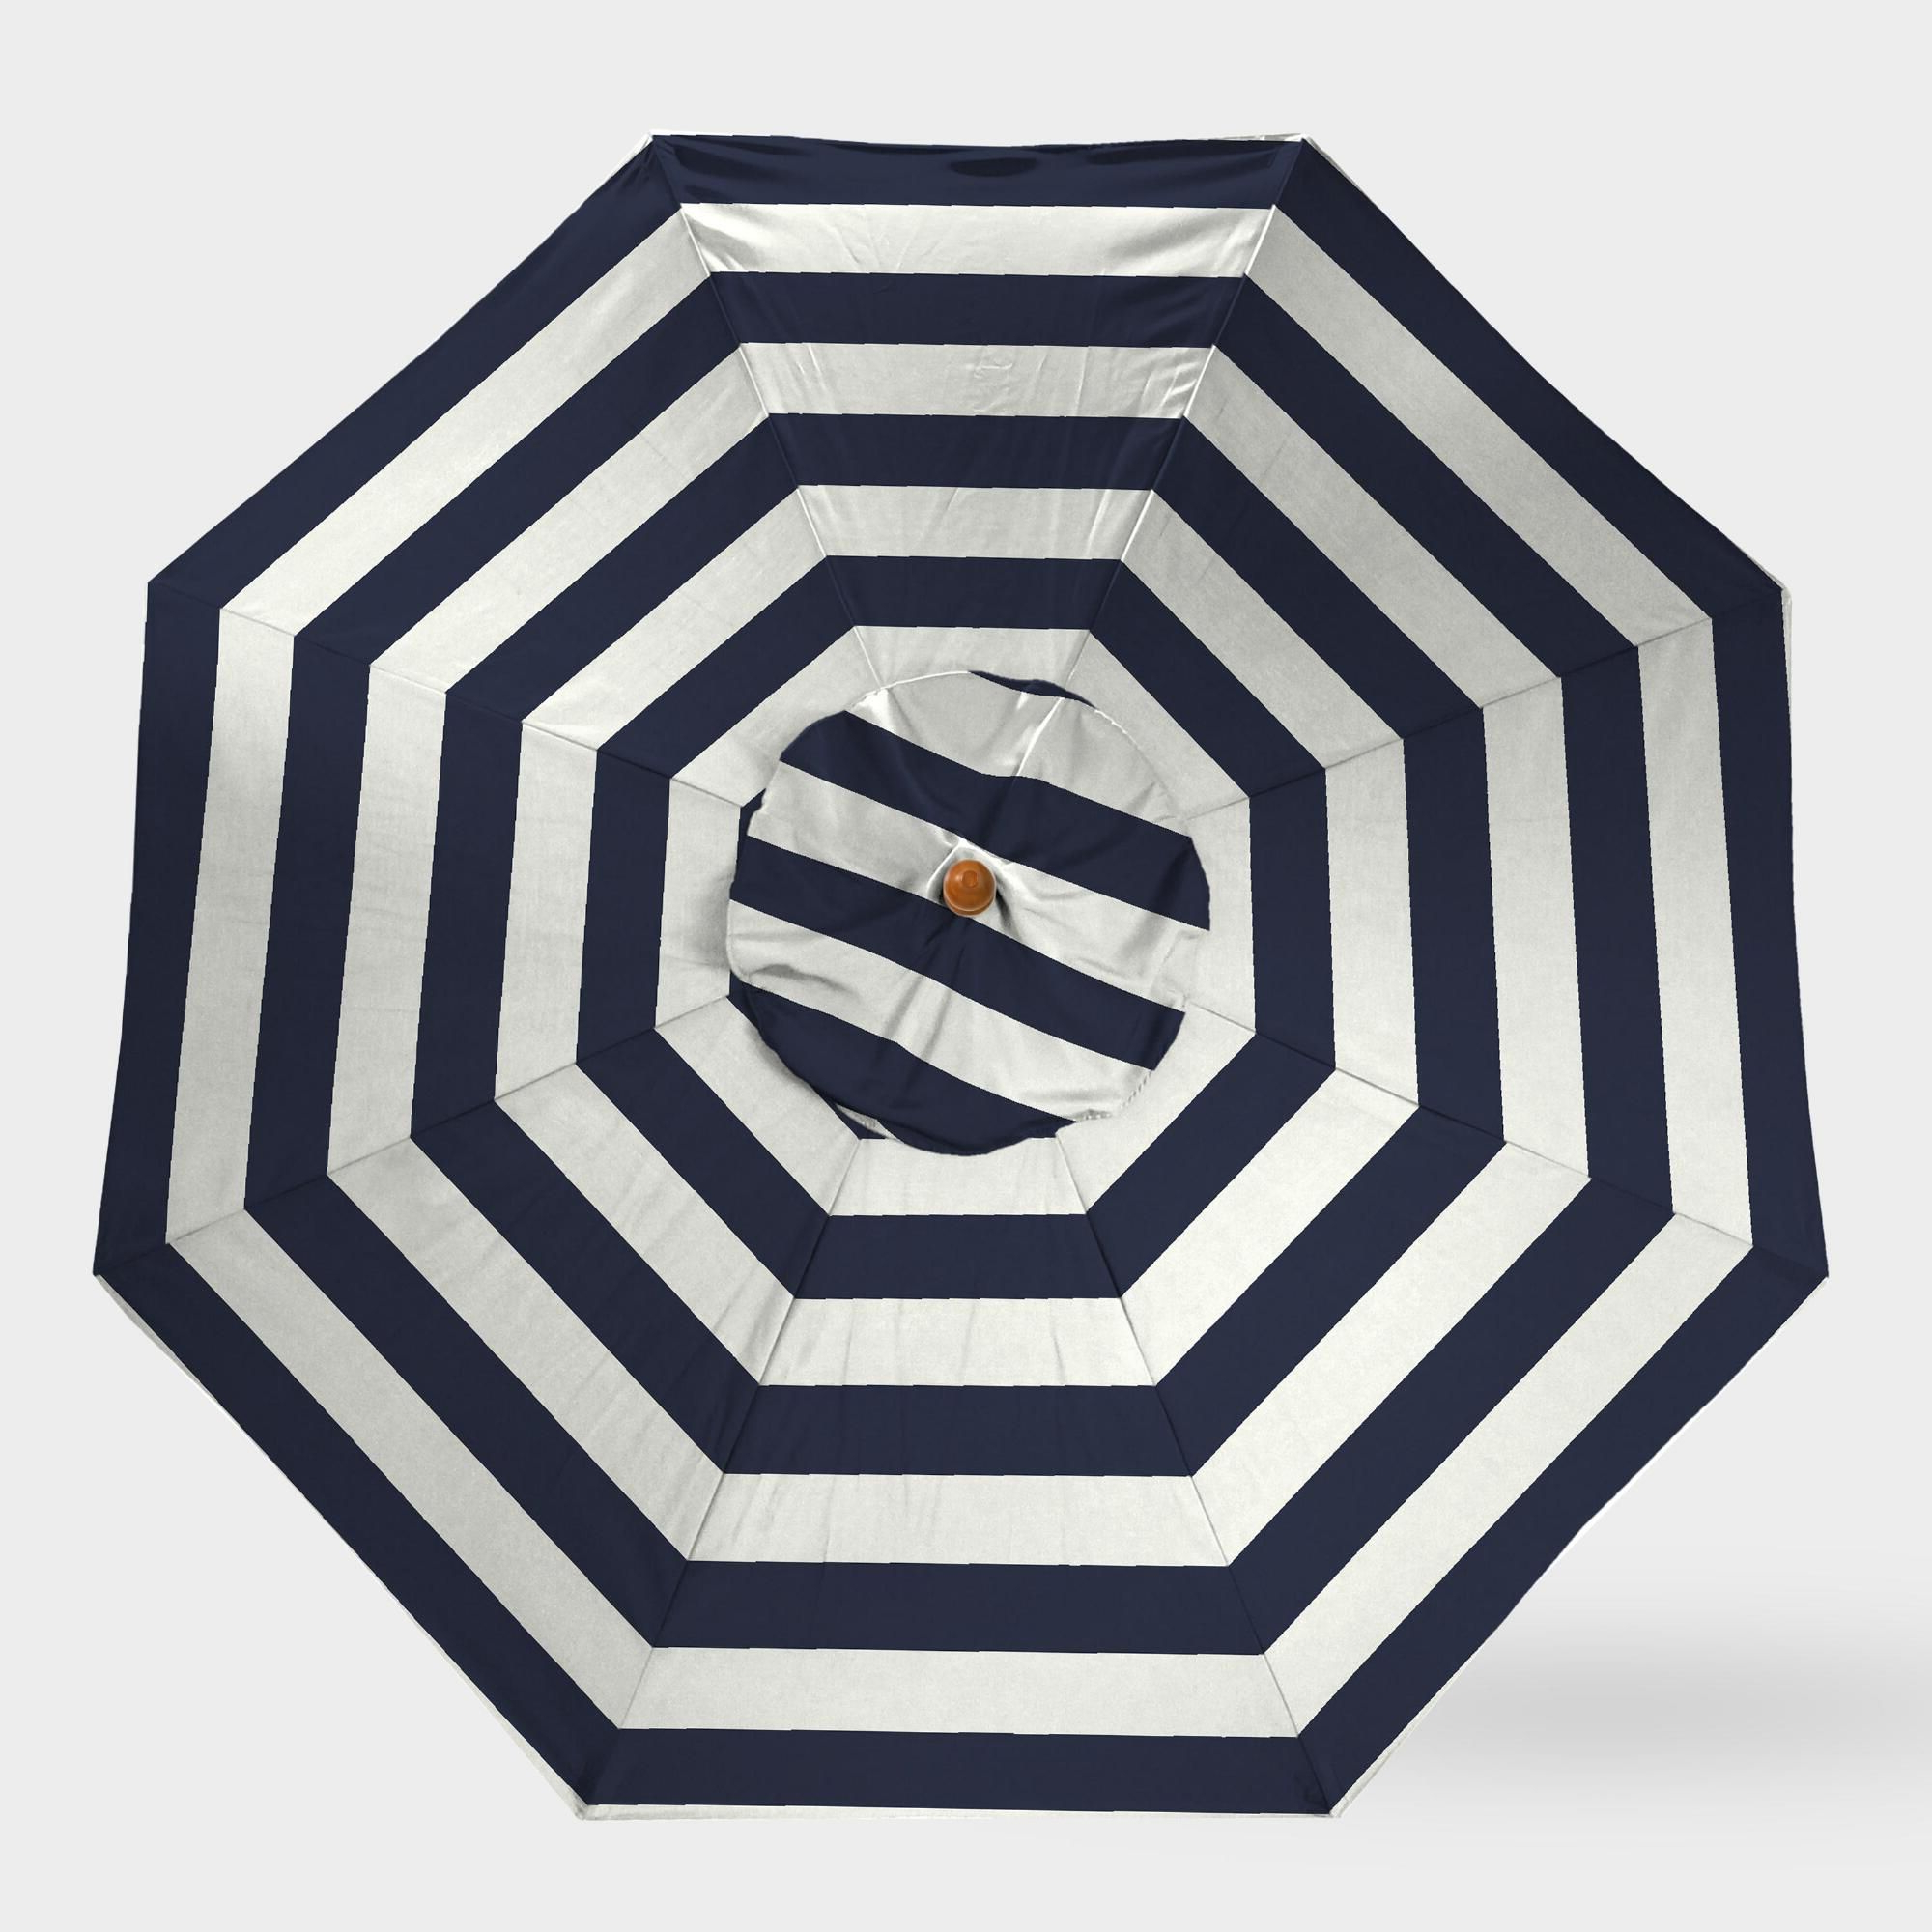 Widely Used Peacoat Blue Stripe 5 Ft Replacement Umbrella Canopyworld Market Throughout Darwen Tiltable Patio Stripe Market Umbrellas (View 7 of 20)